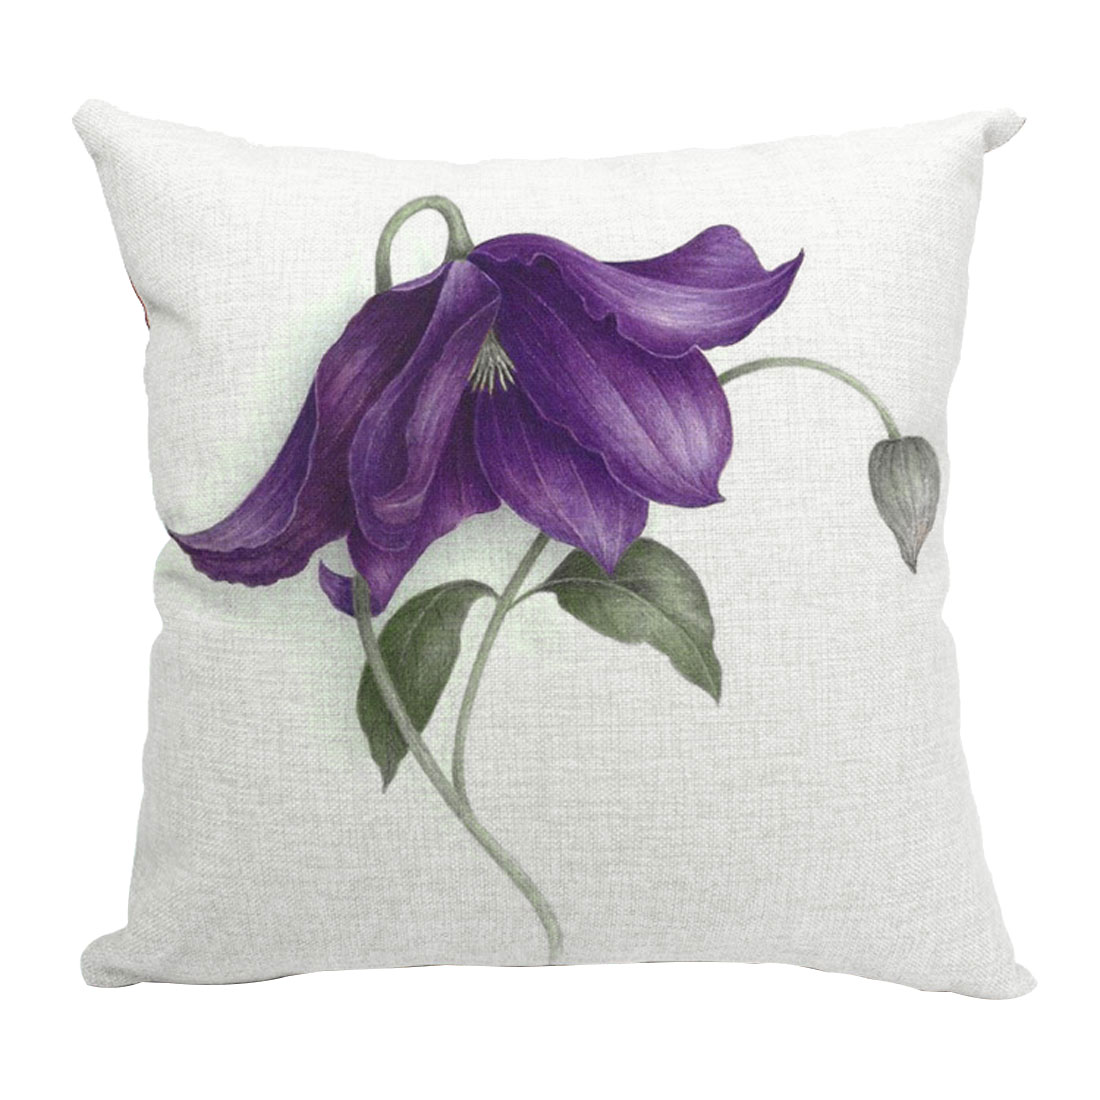 Home Sofa Cotton Linen Hosta Pattern Waist Throw Cushion Cover Pillow Case